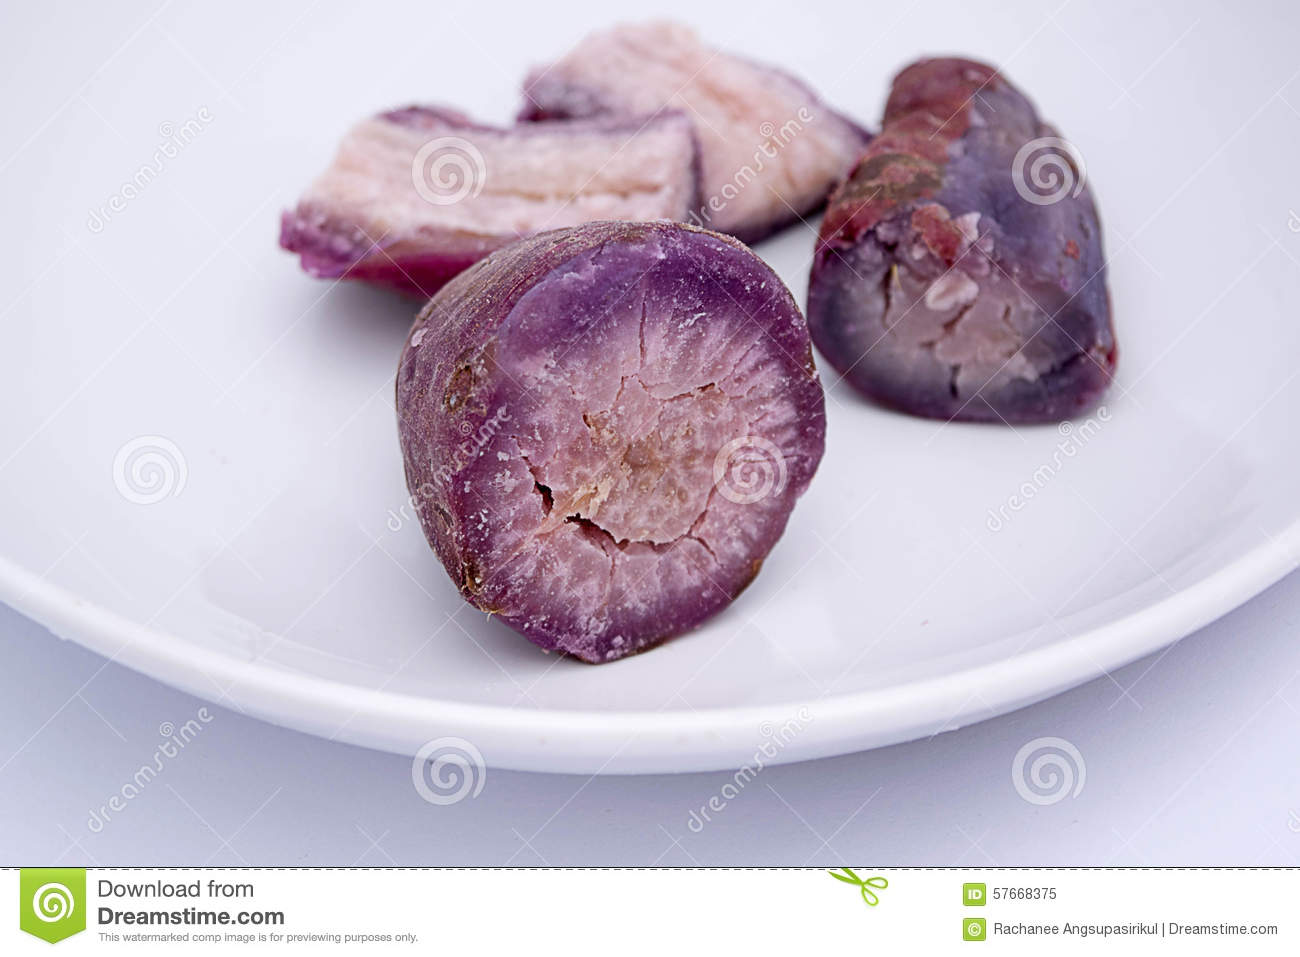 Purple yam for desserts.